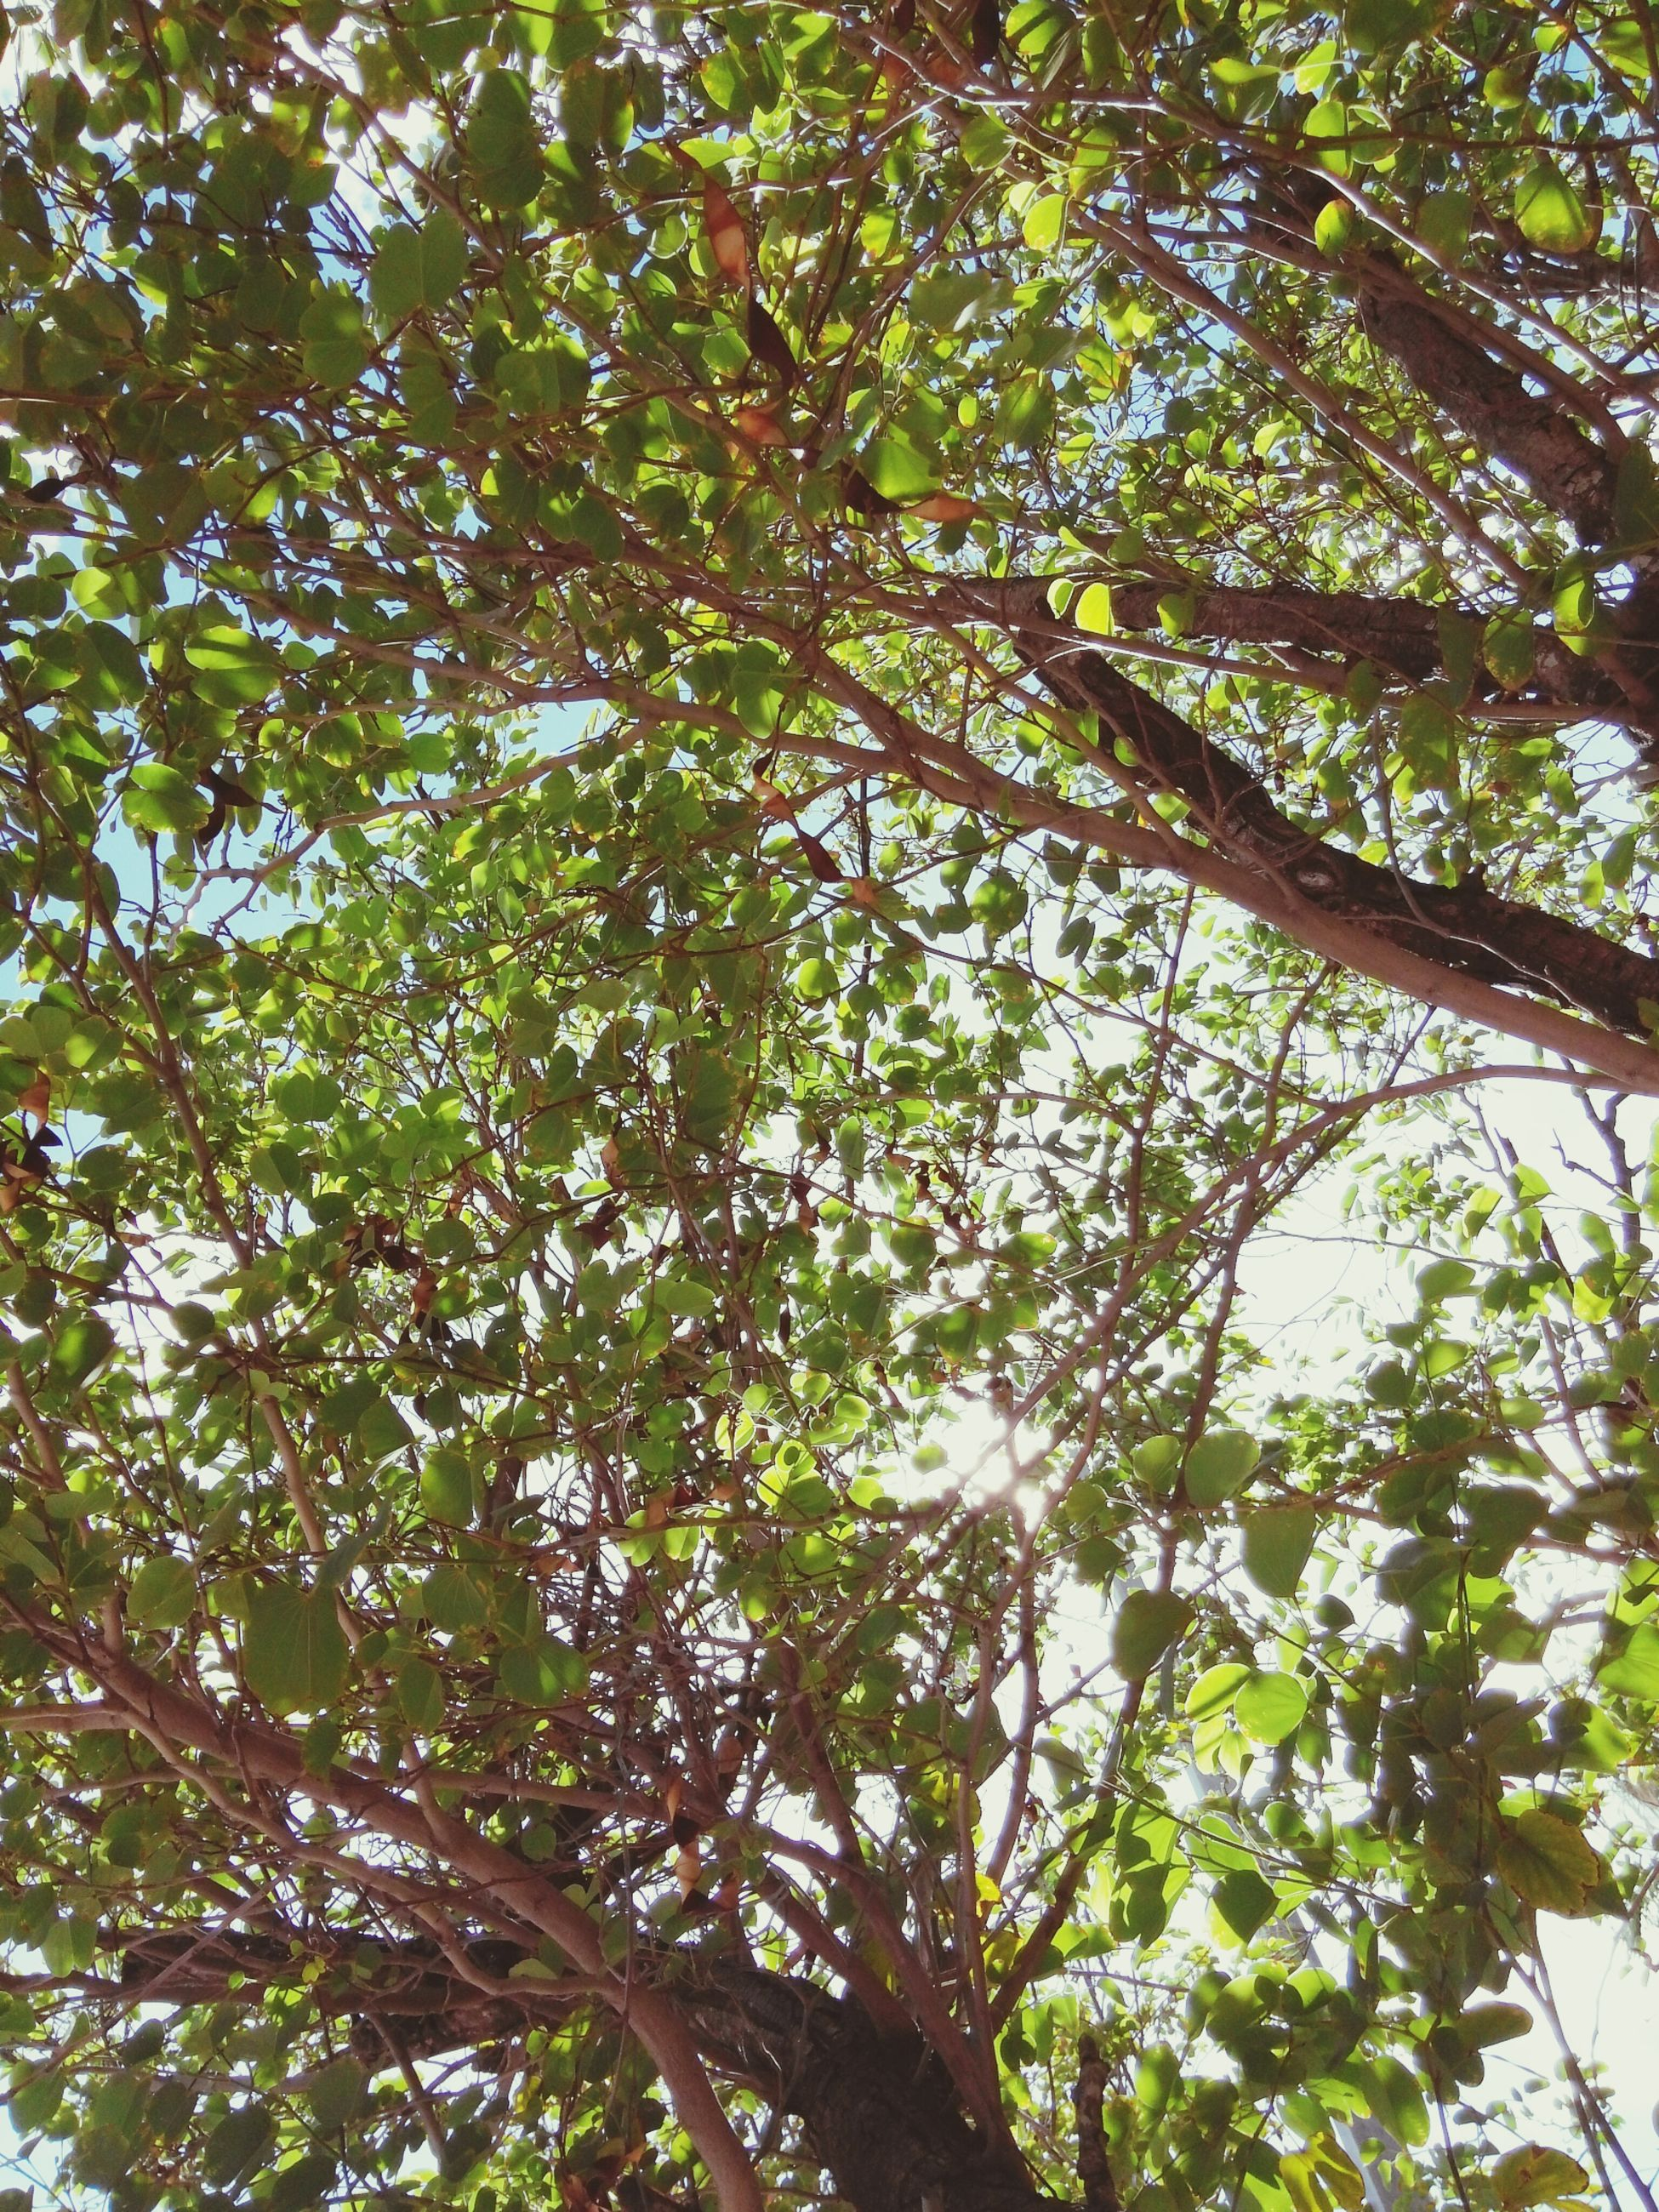 tree, branch, low angle view, growth, green color, nature, tranquility, leaf, beauty in nature, lush foliage, full frame, backgrounds, day, forest, tree trunk, outdoors, no people, sunlight, green, sky